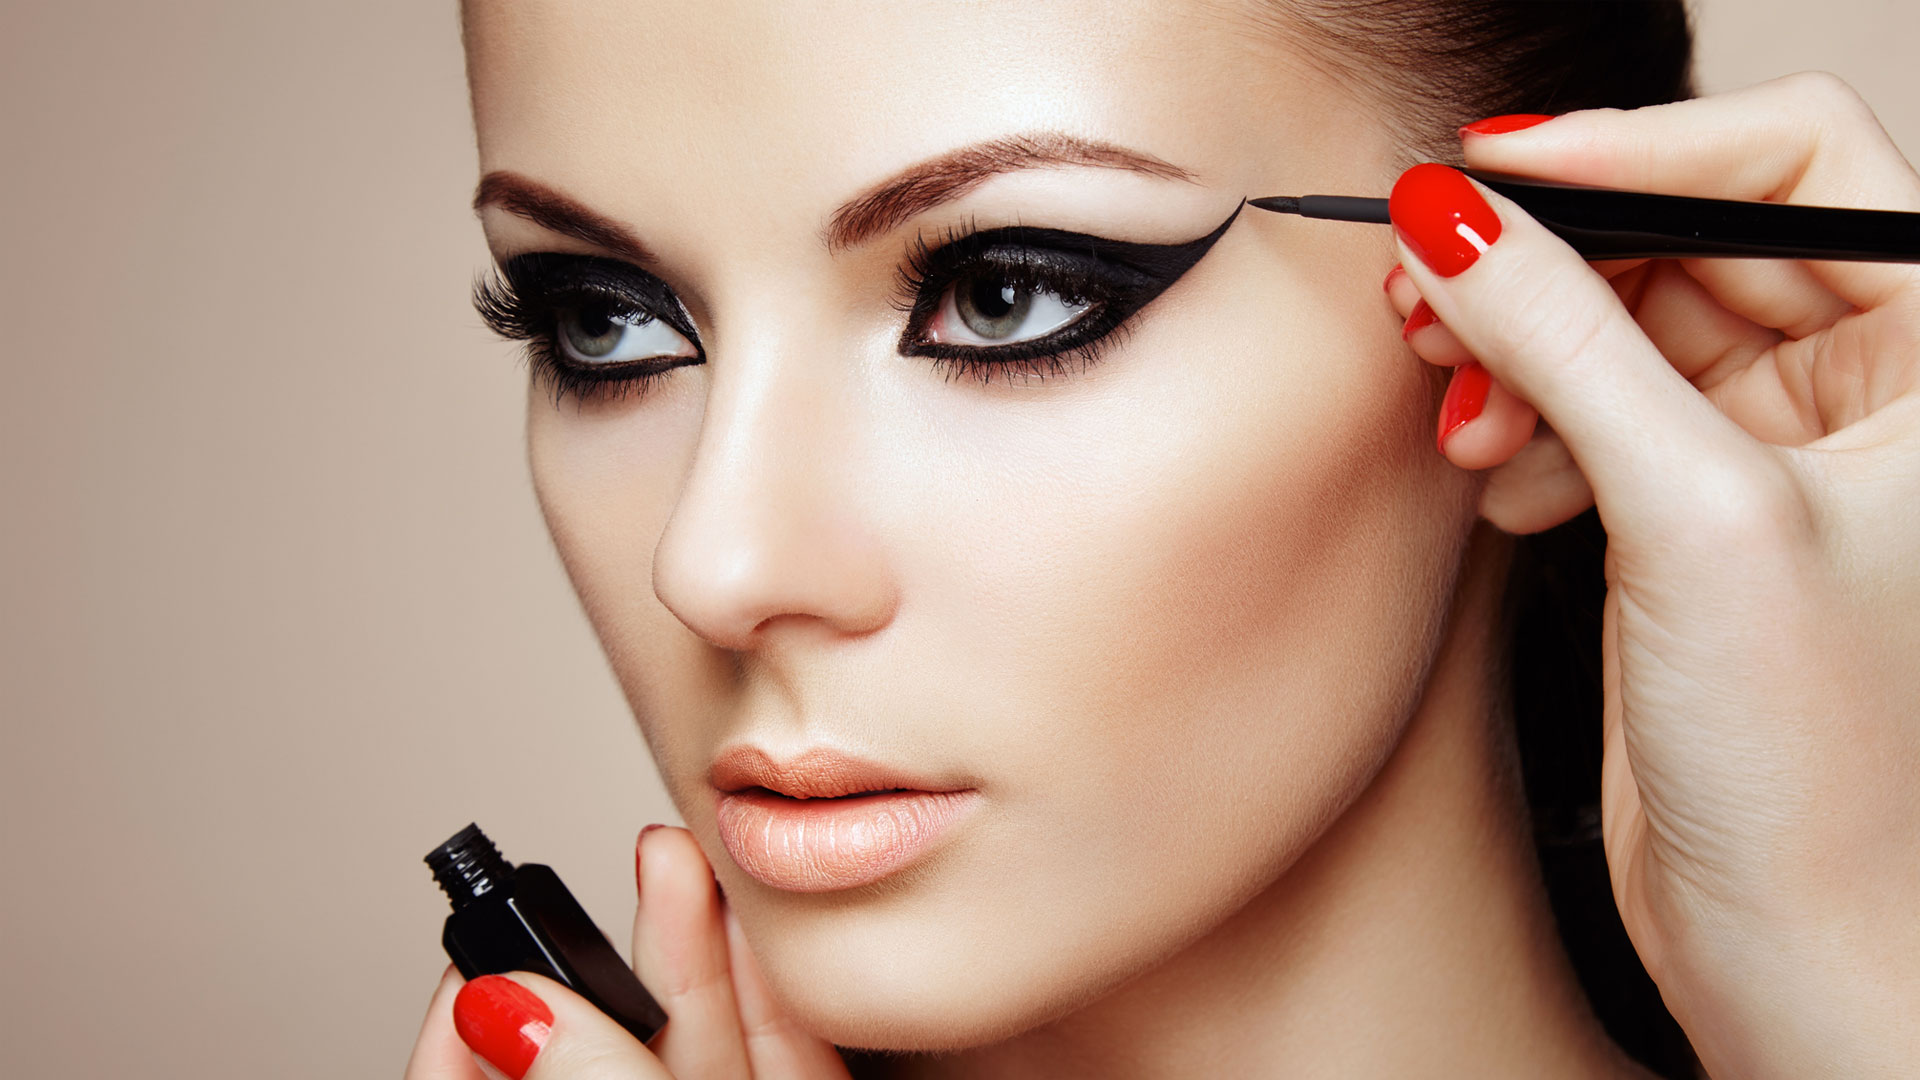 Animated Thank You Images For Powerpoint Presentations Gif Best makeup for professional photos